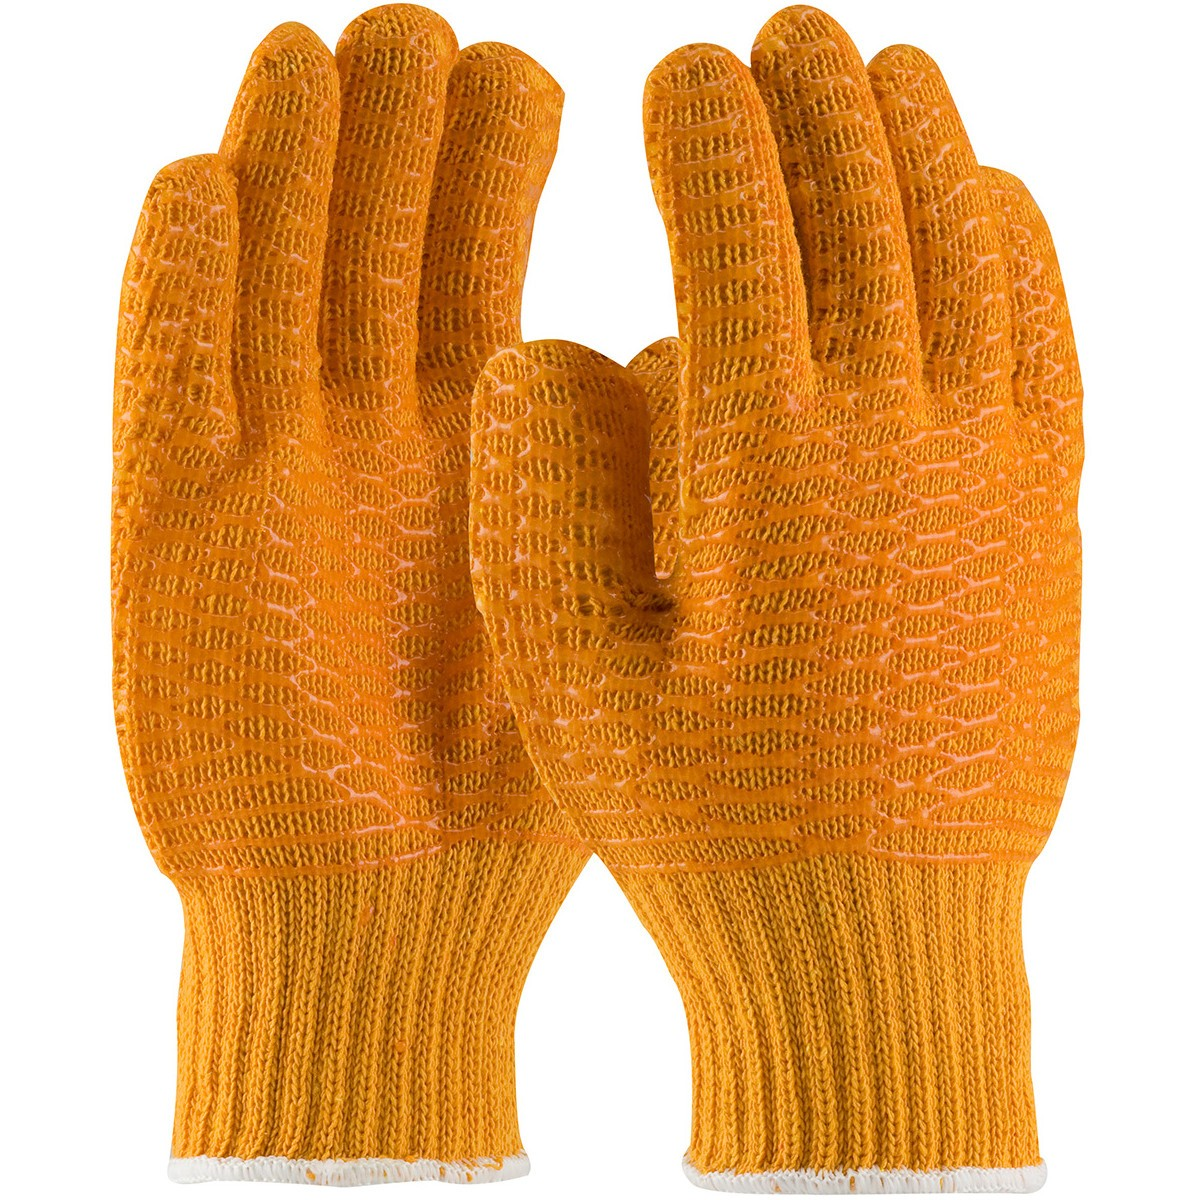 PIP 39-3013 Seamless Knit Polyester Gloves with Double ...